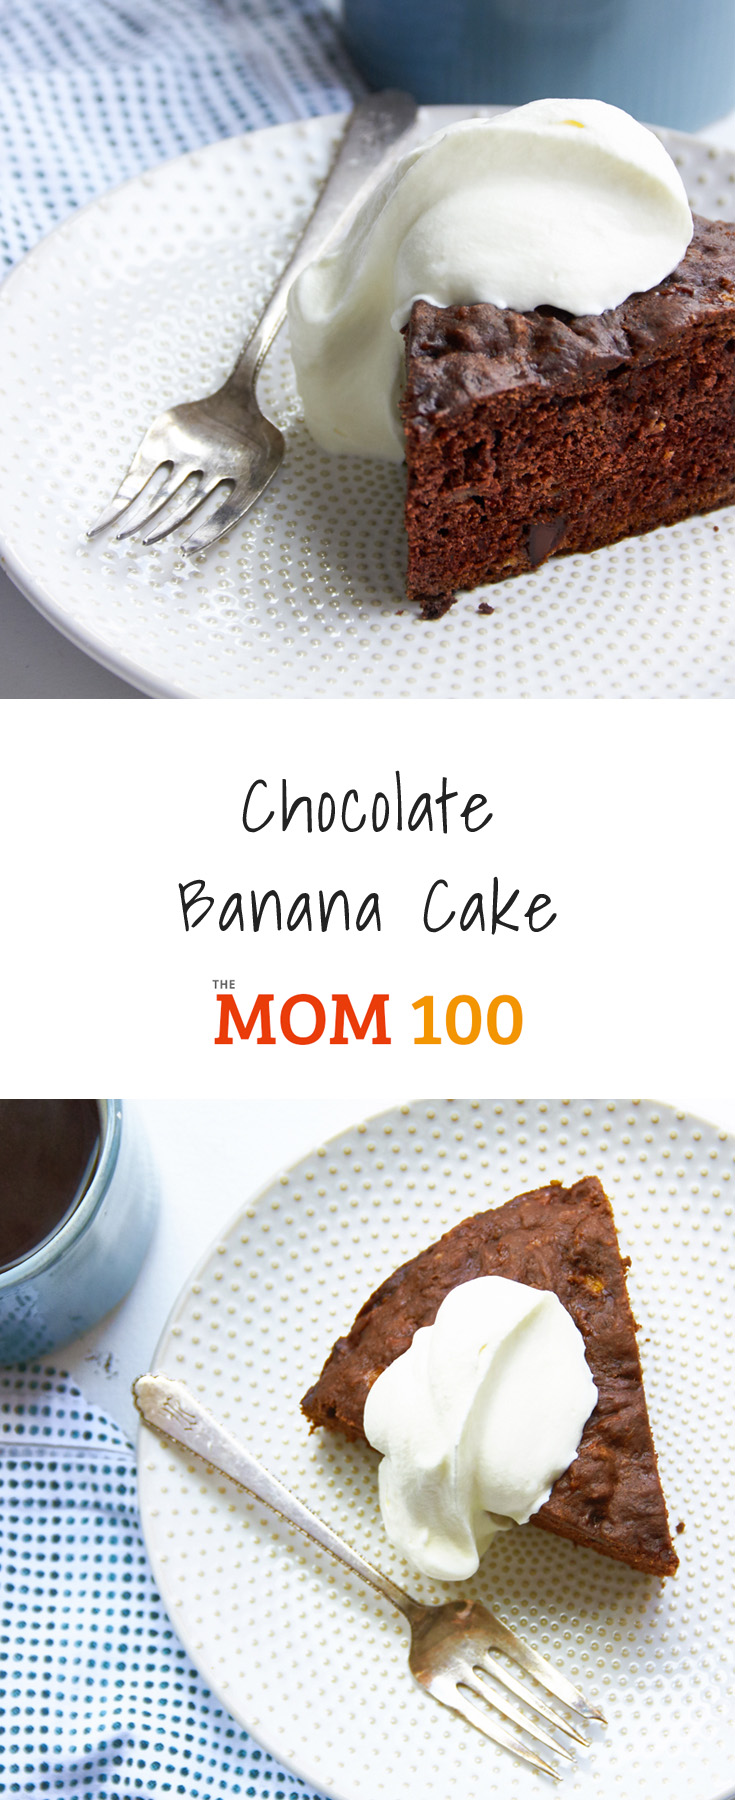 This Chocolate Banana Cake is super moist, and has what is just the right level of sweetness to qualify as breakfast, a snack, or dessert.